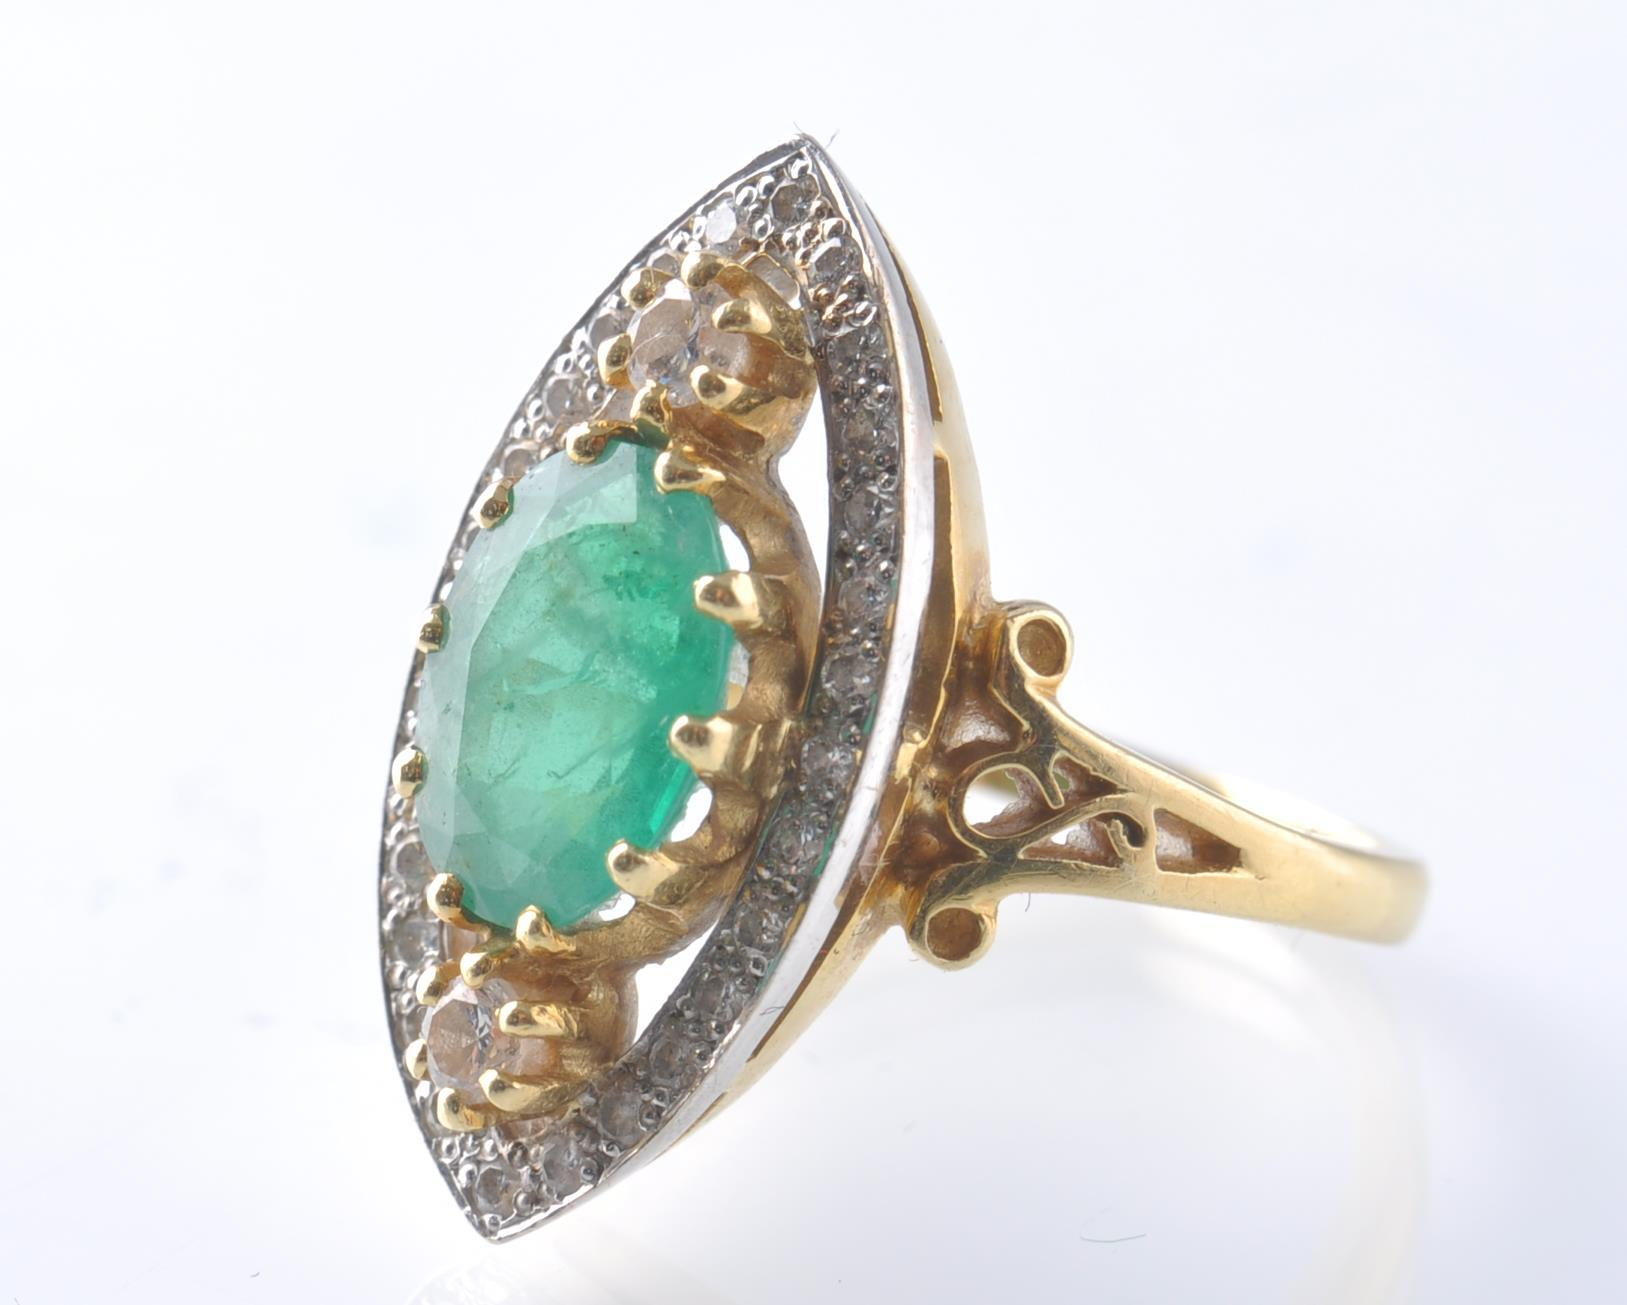 A HALLMARKED 18CT GOD EMERALD AND DIAMOND RING - Image 2 of 11